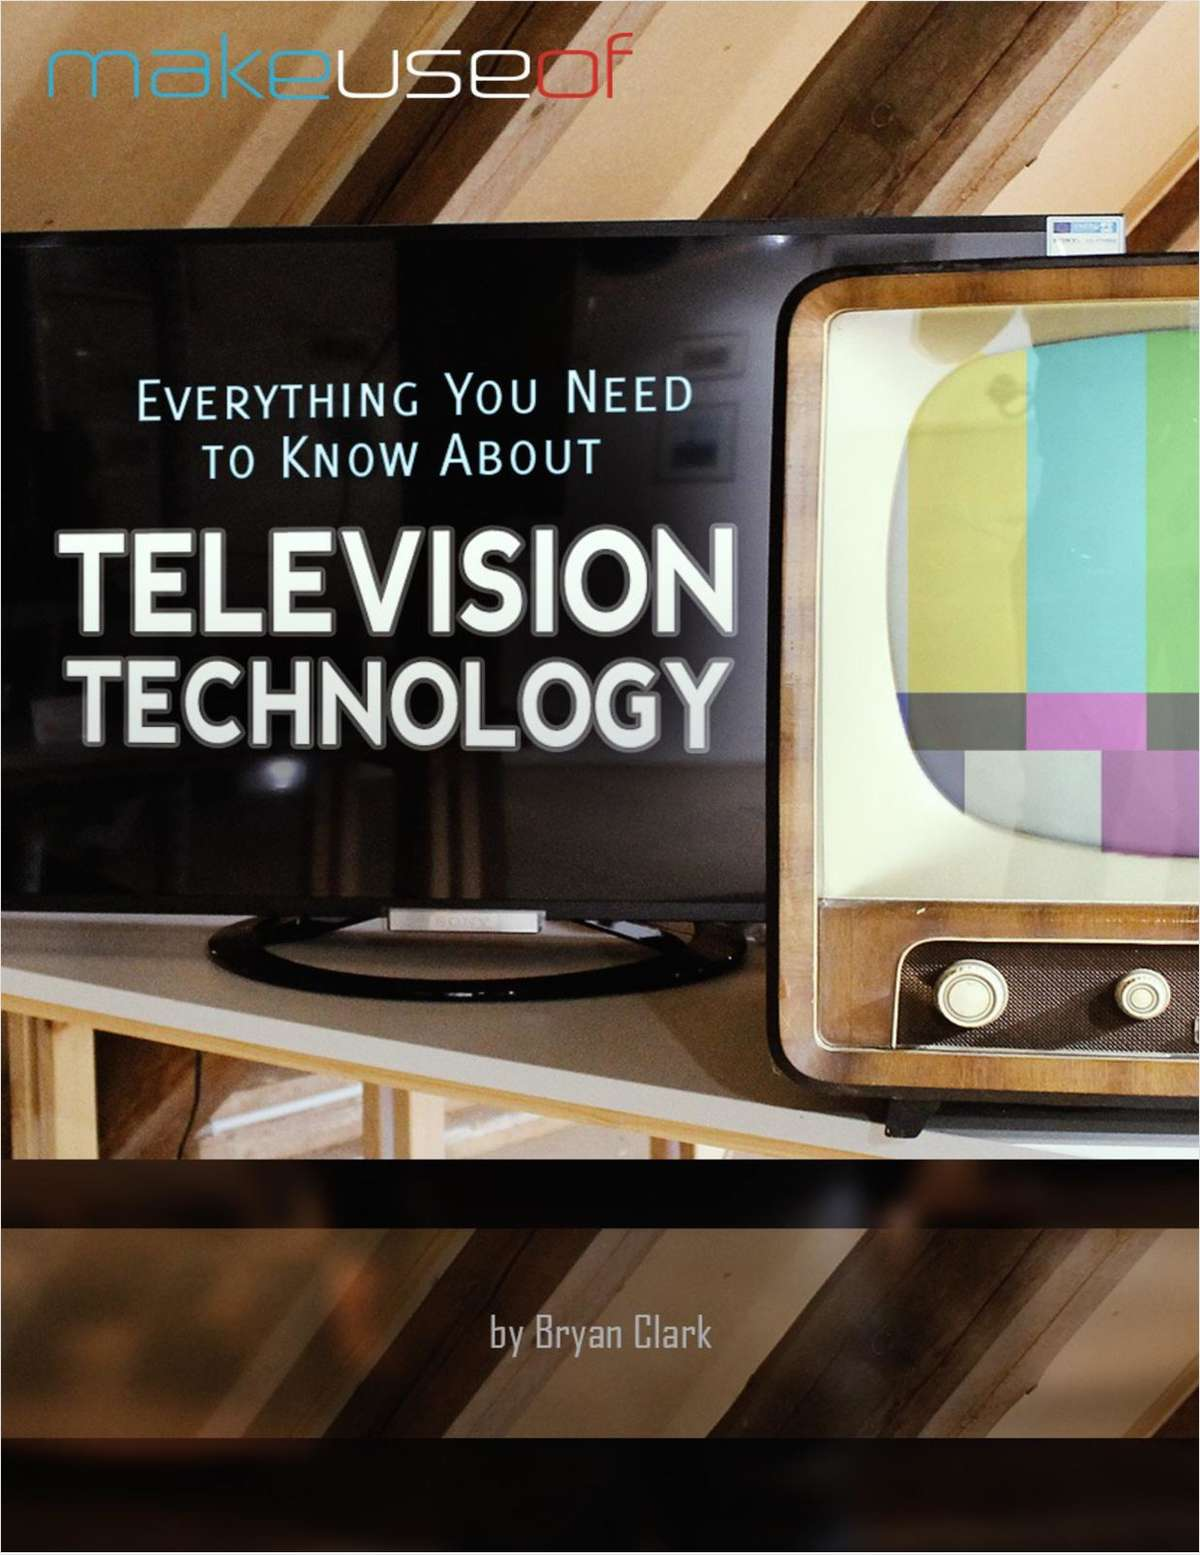 Everything You Need to Know About Television Technology